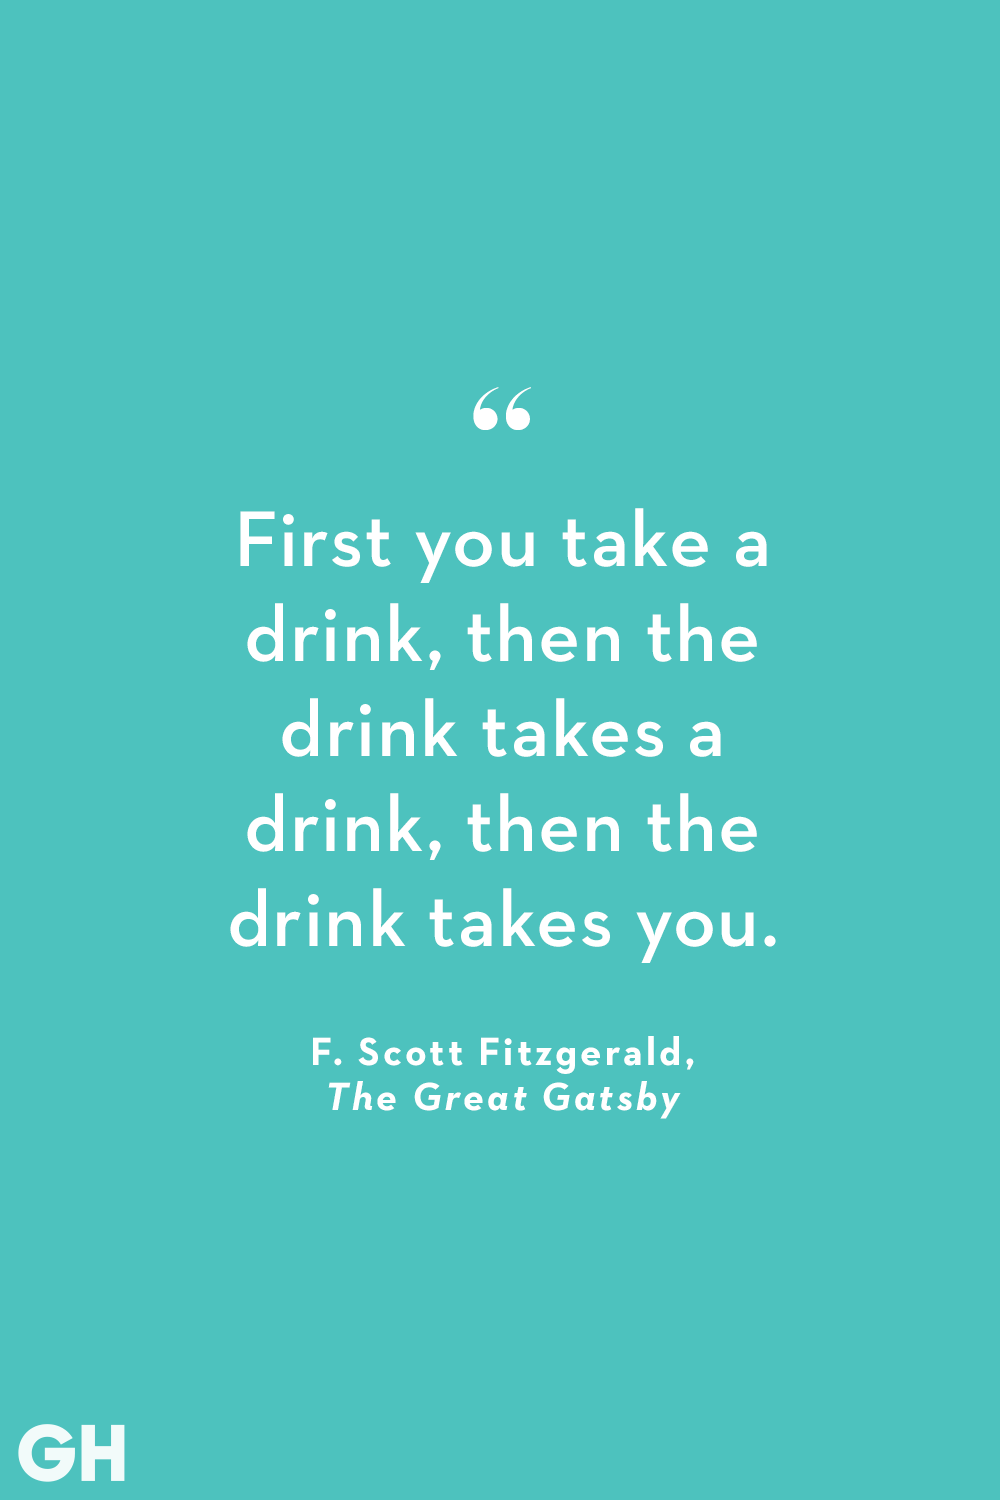 F. Scott Fitzgerald The Great Gatsby Alcohol Quote